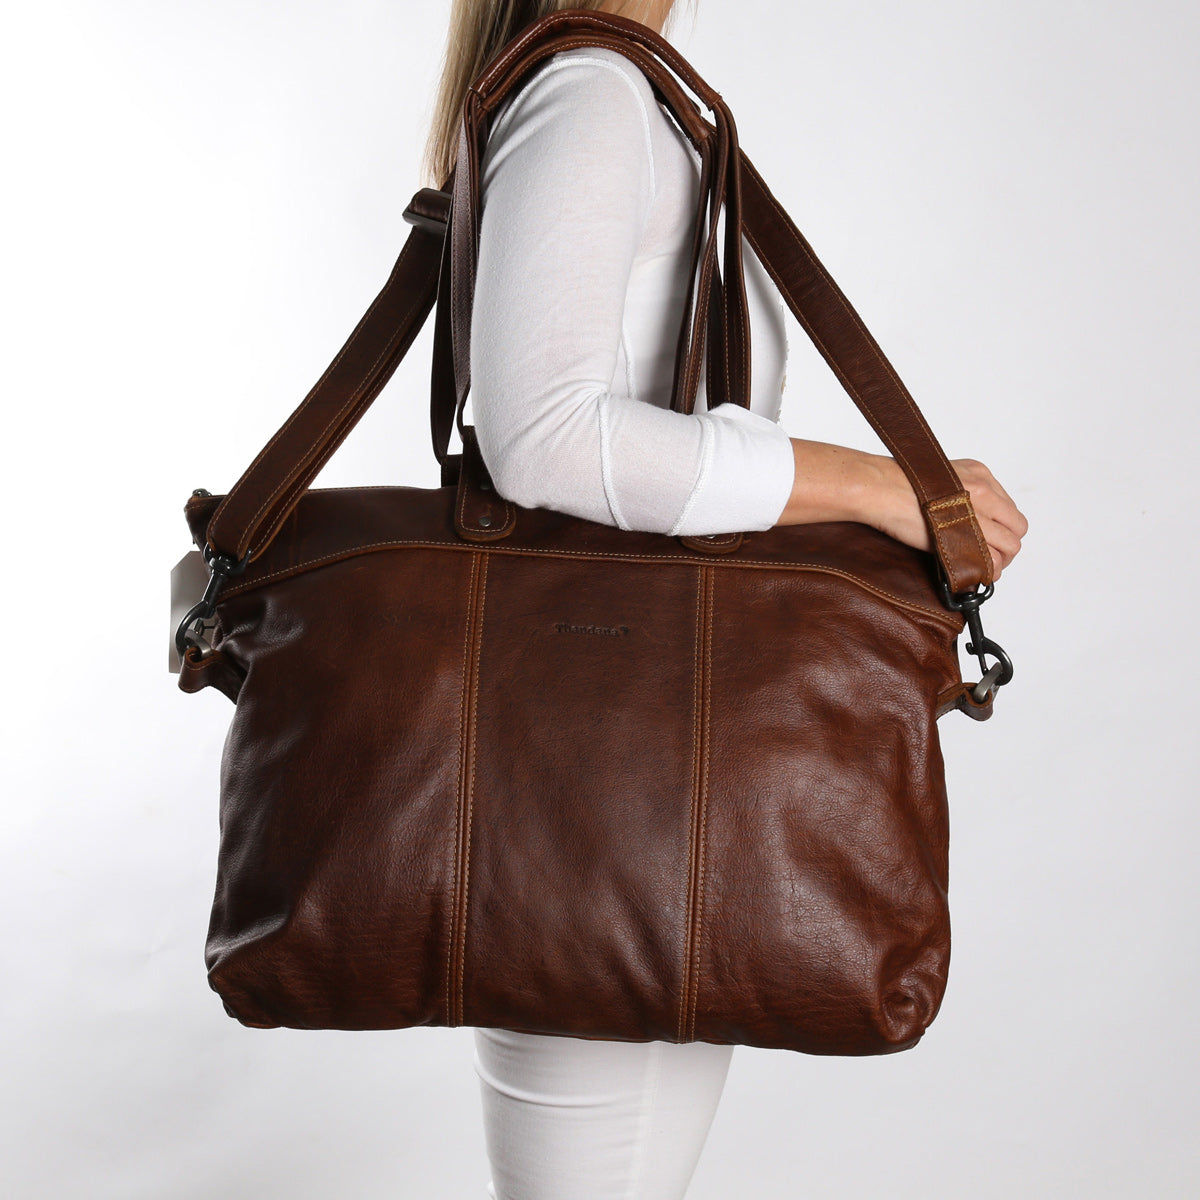 Thandana Ladies Cabin Bag - Brown - Zufrique Boutique